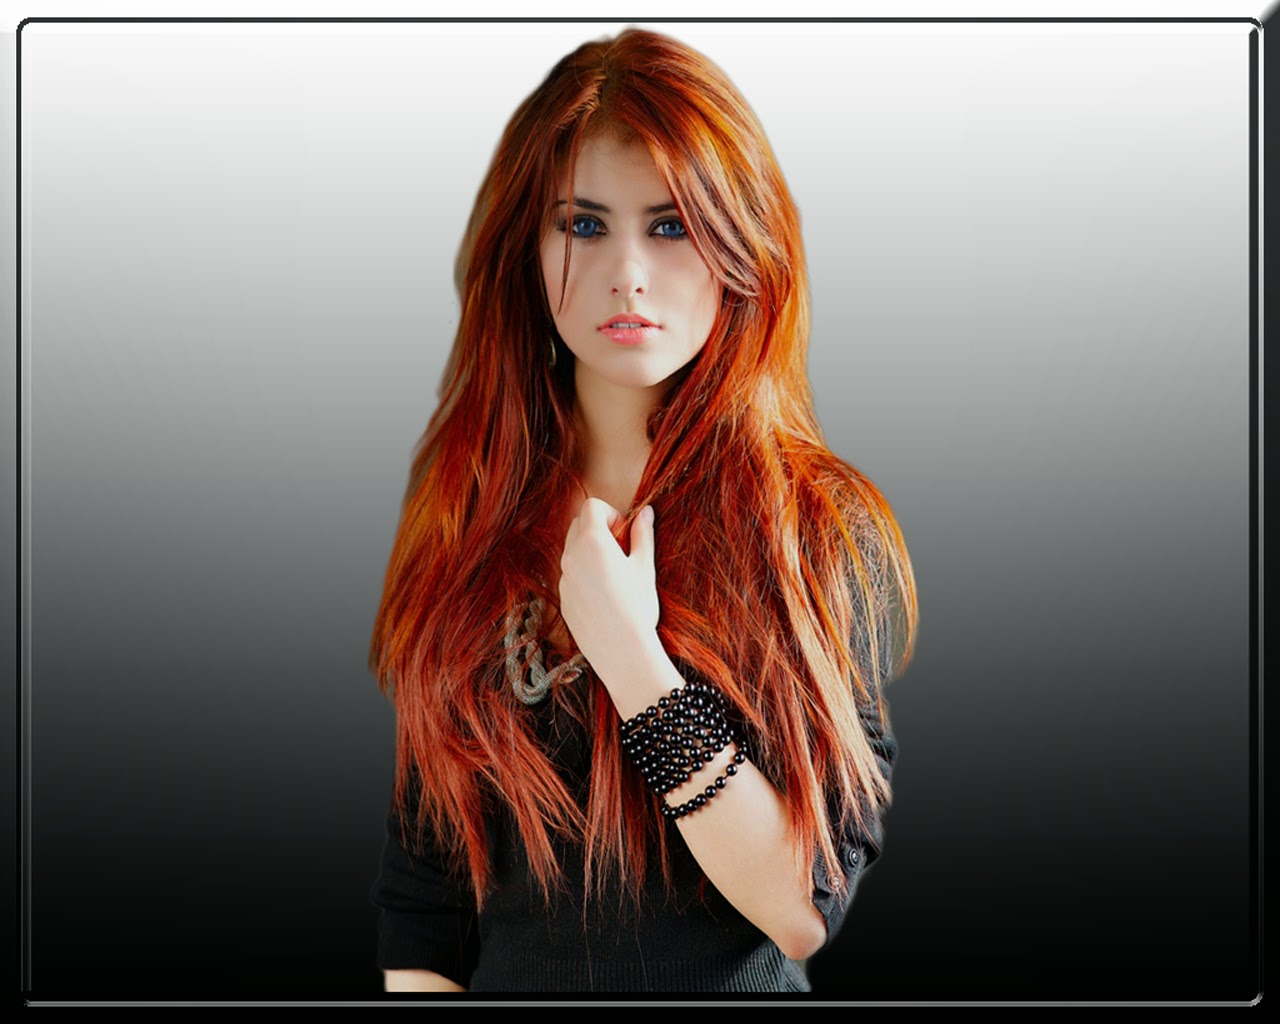 wallpaper cute redhead girl wallpaper cute redhead girl hd wallpaper 1280x1024